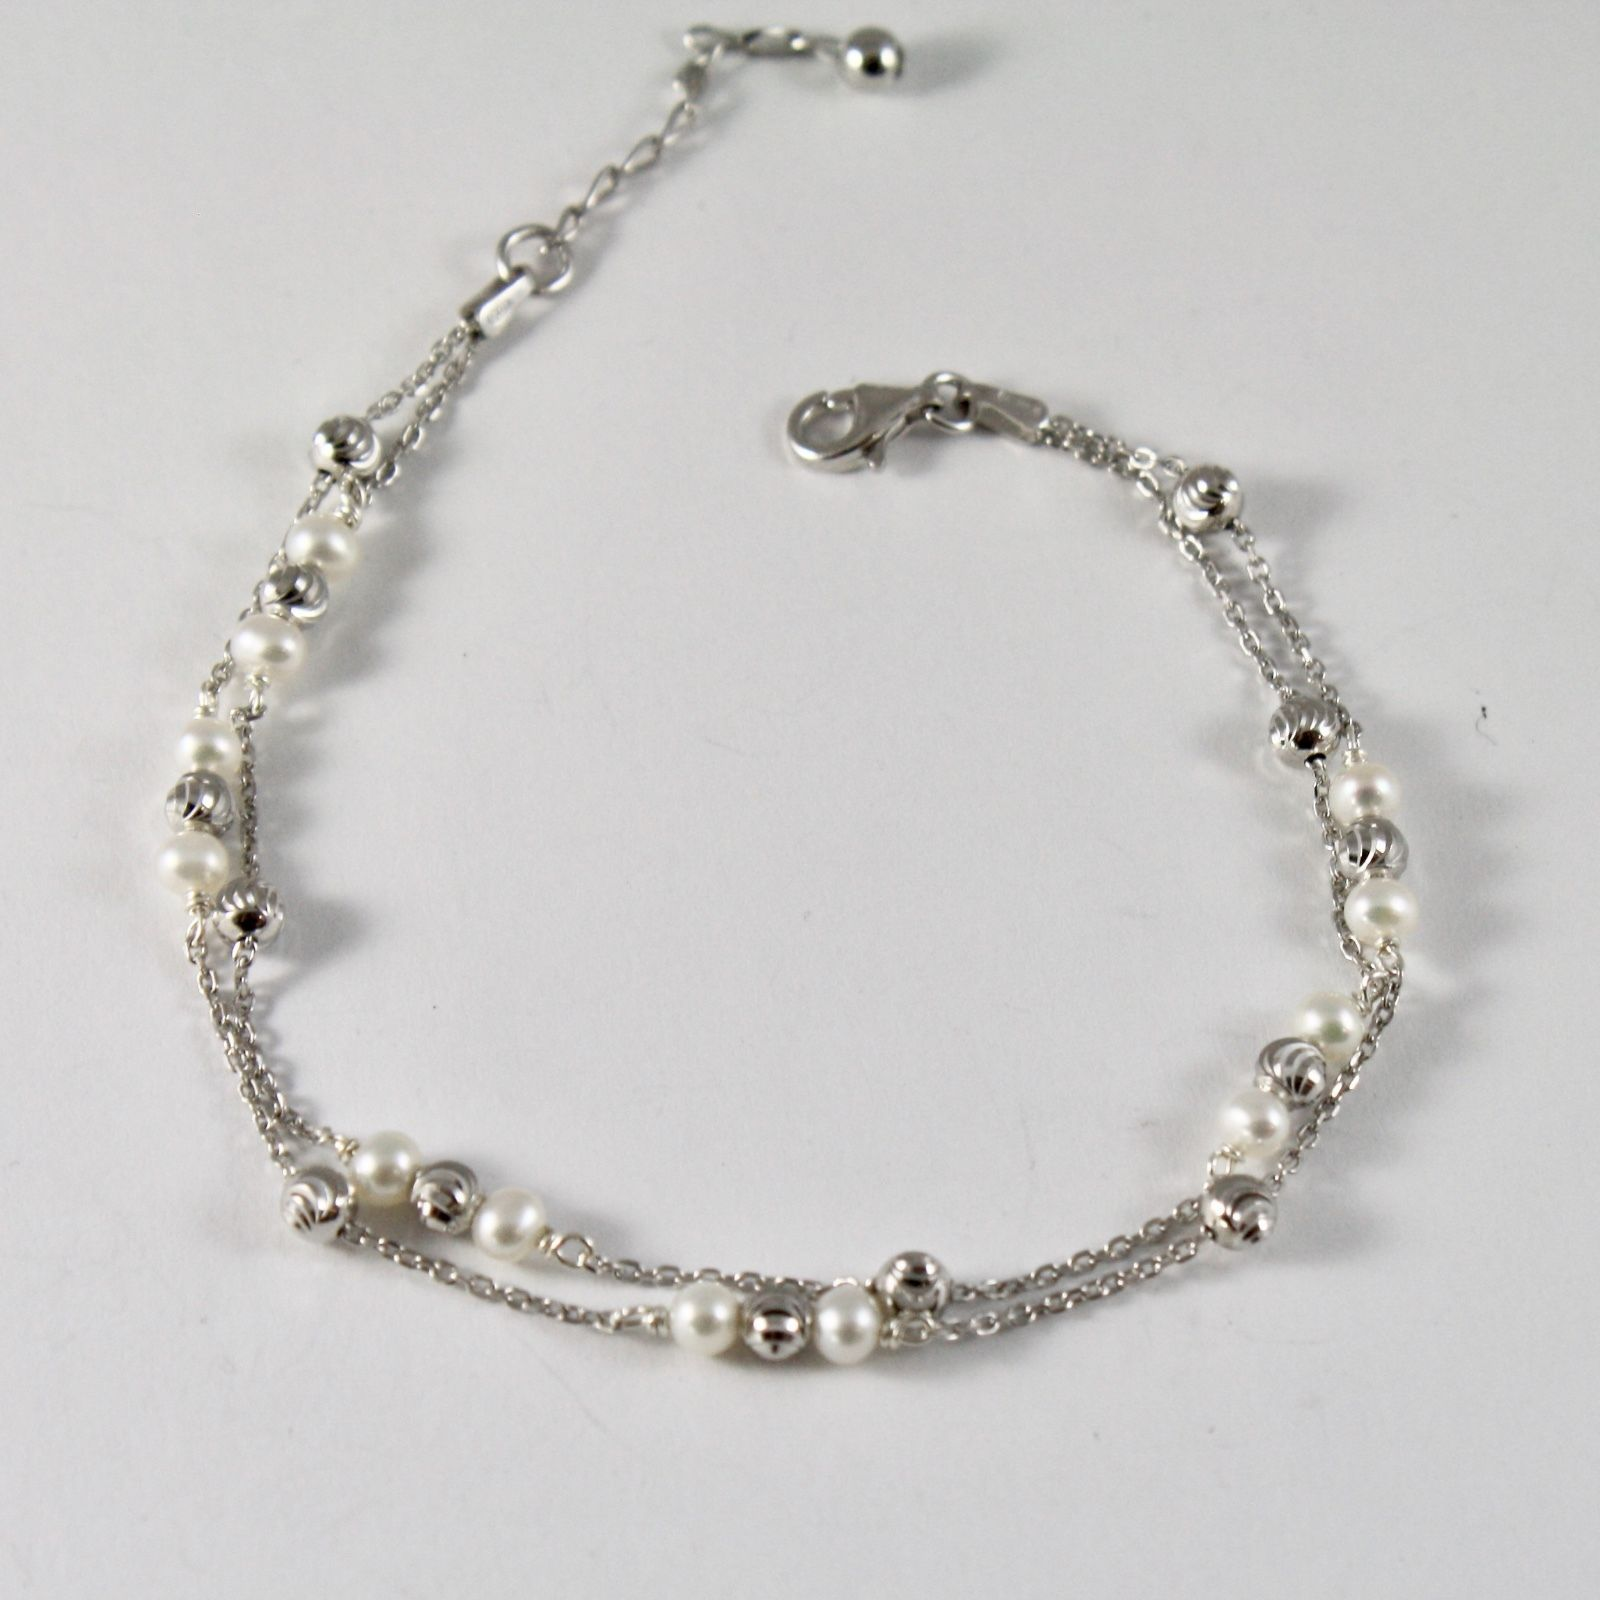 925 Silver Bracelet with Faceted Balls and white pearls freshwater